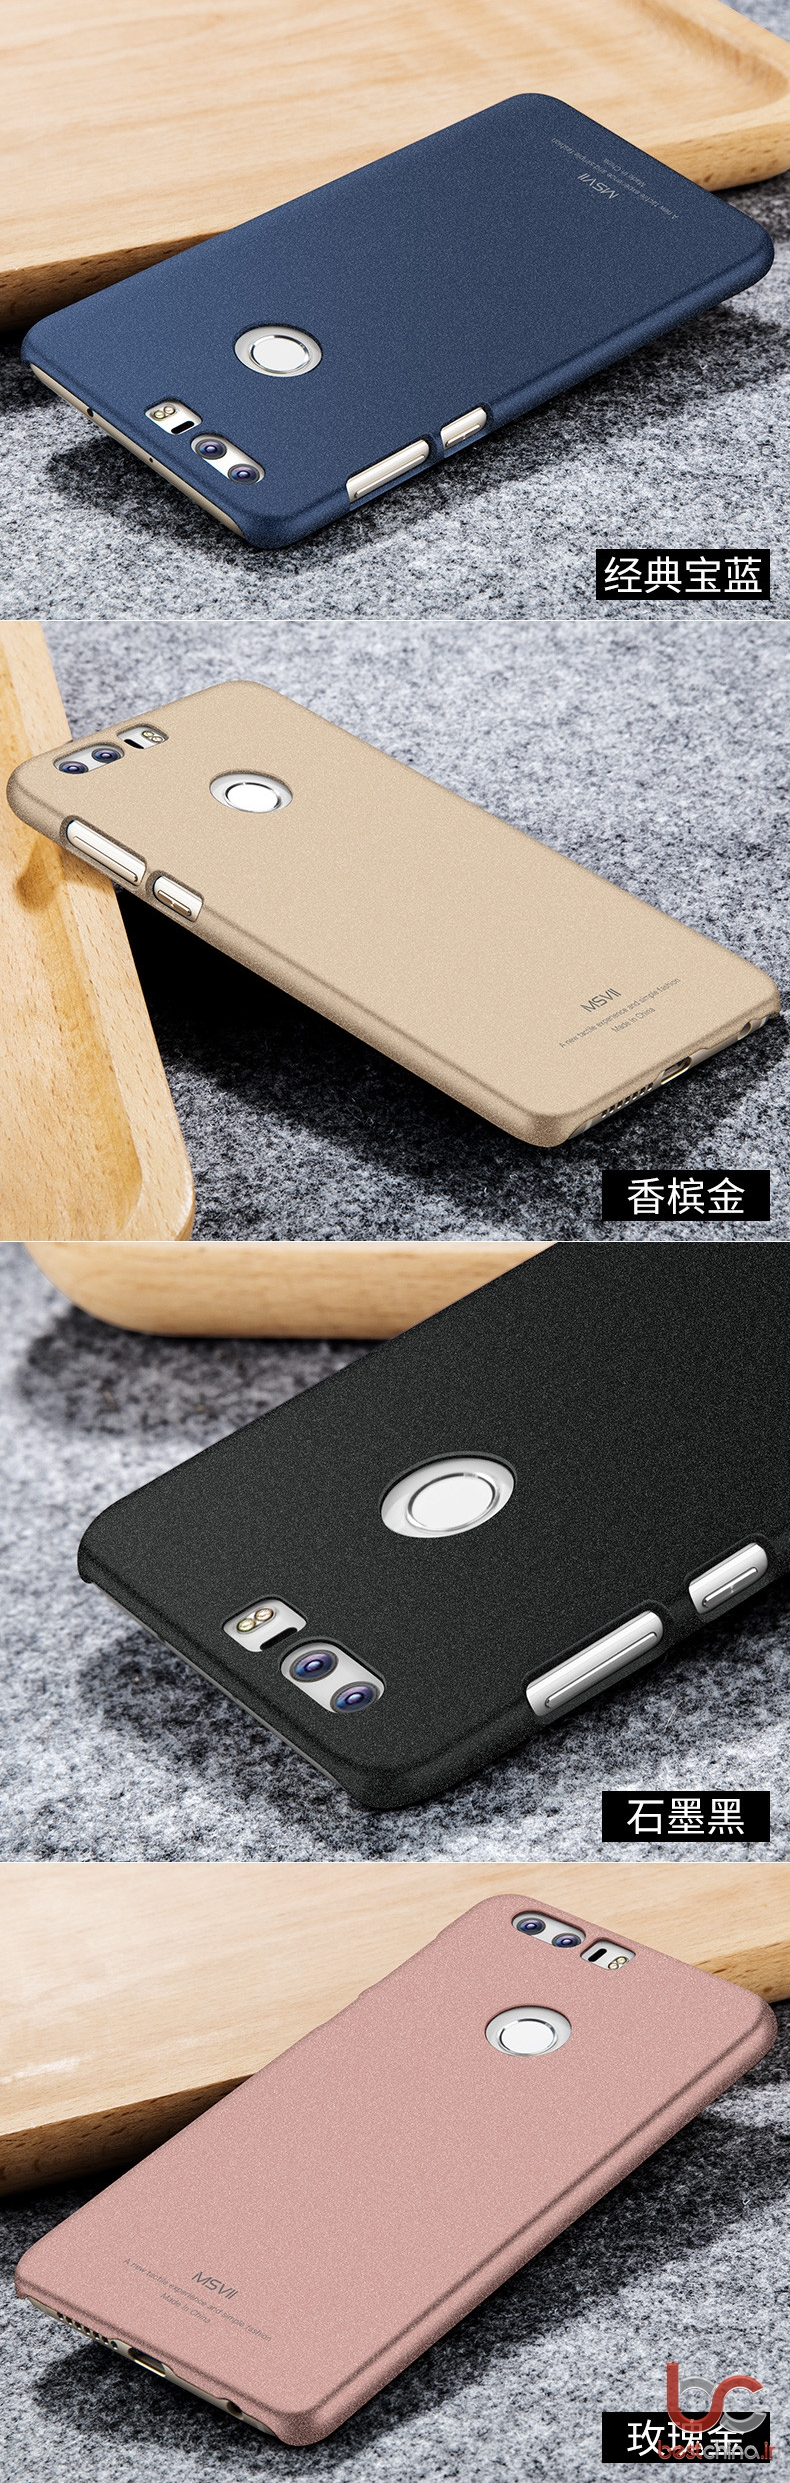 huawei-honor-8-msvii-back-cover4